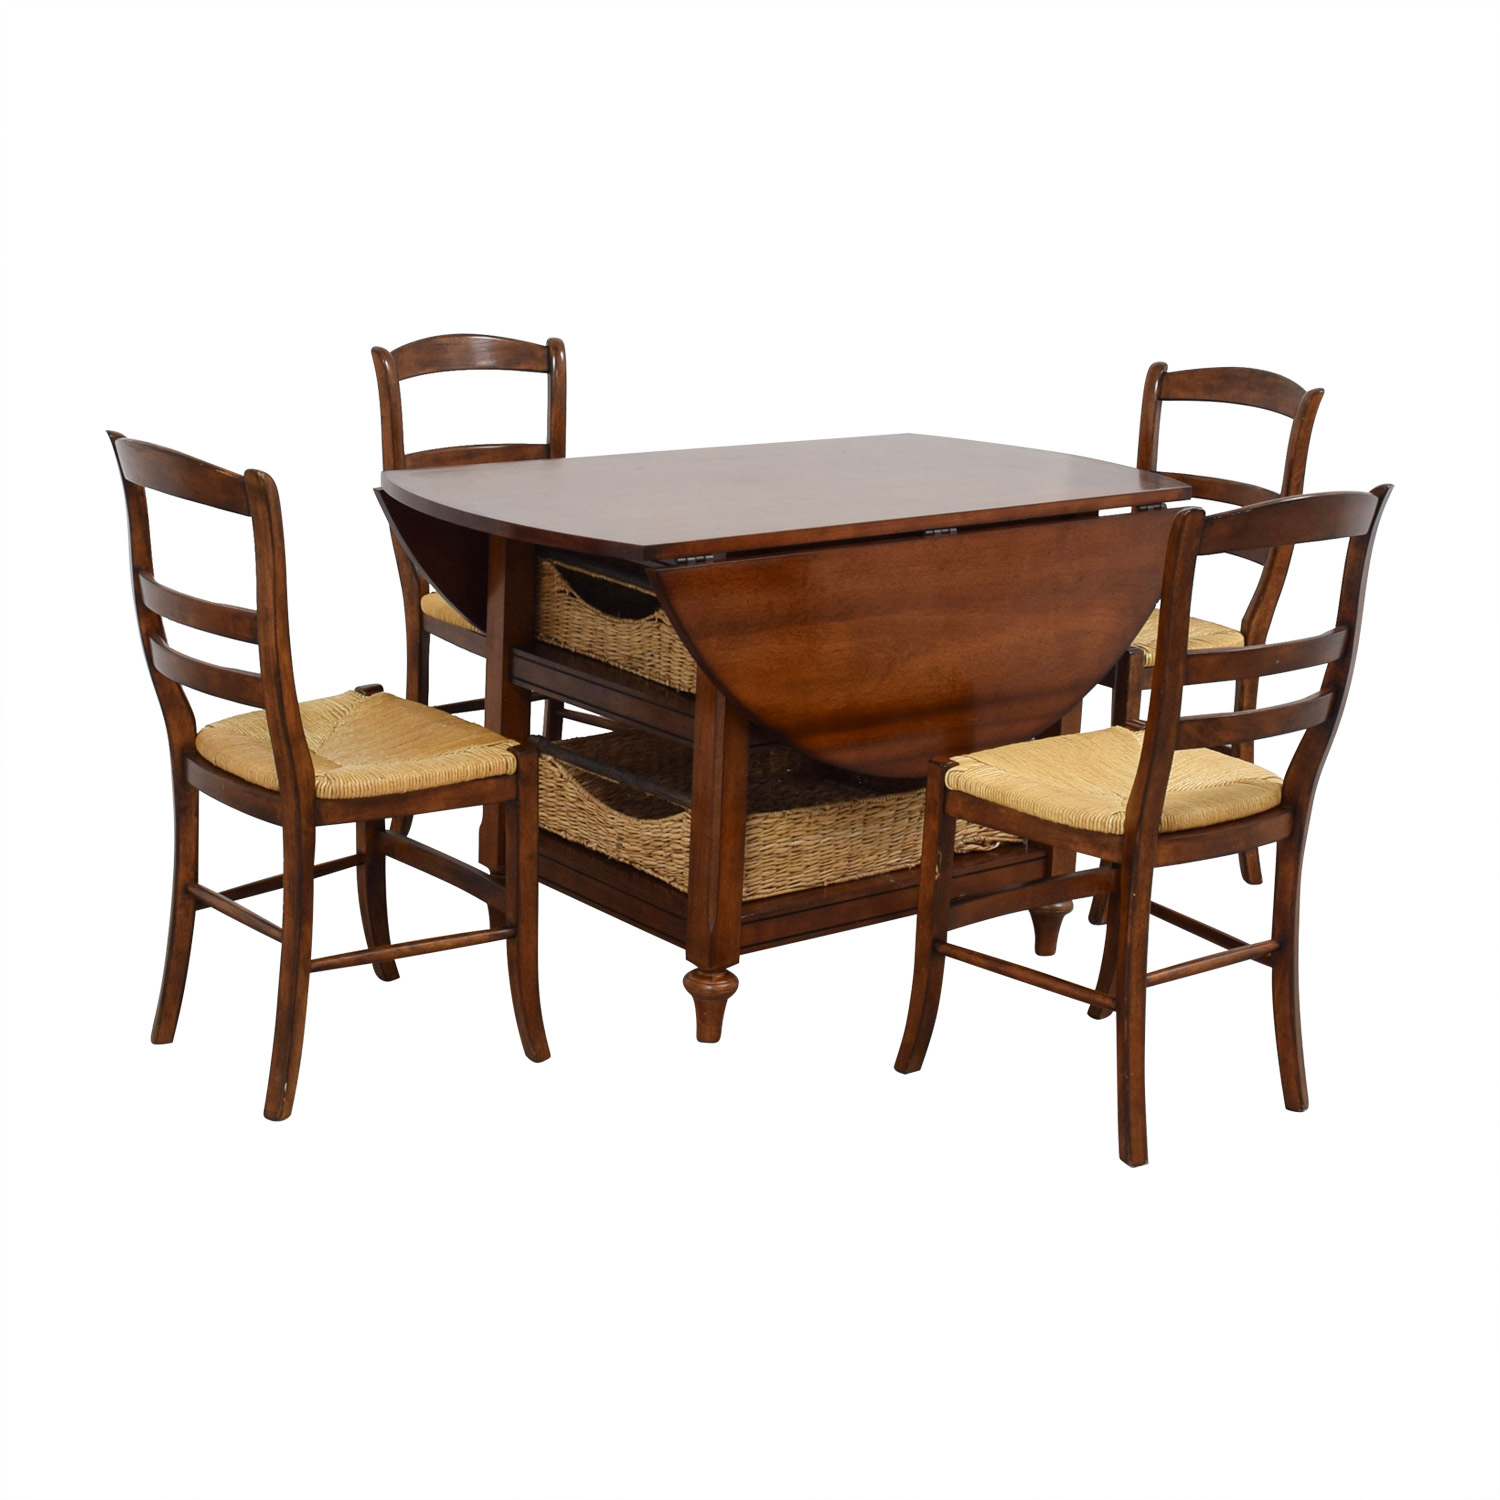 80% OFF - Pottery Barn Pottery Barn Shayne Drop Leaf Dining Set with  Storage Baskets / Tables